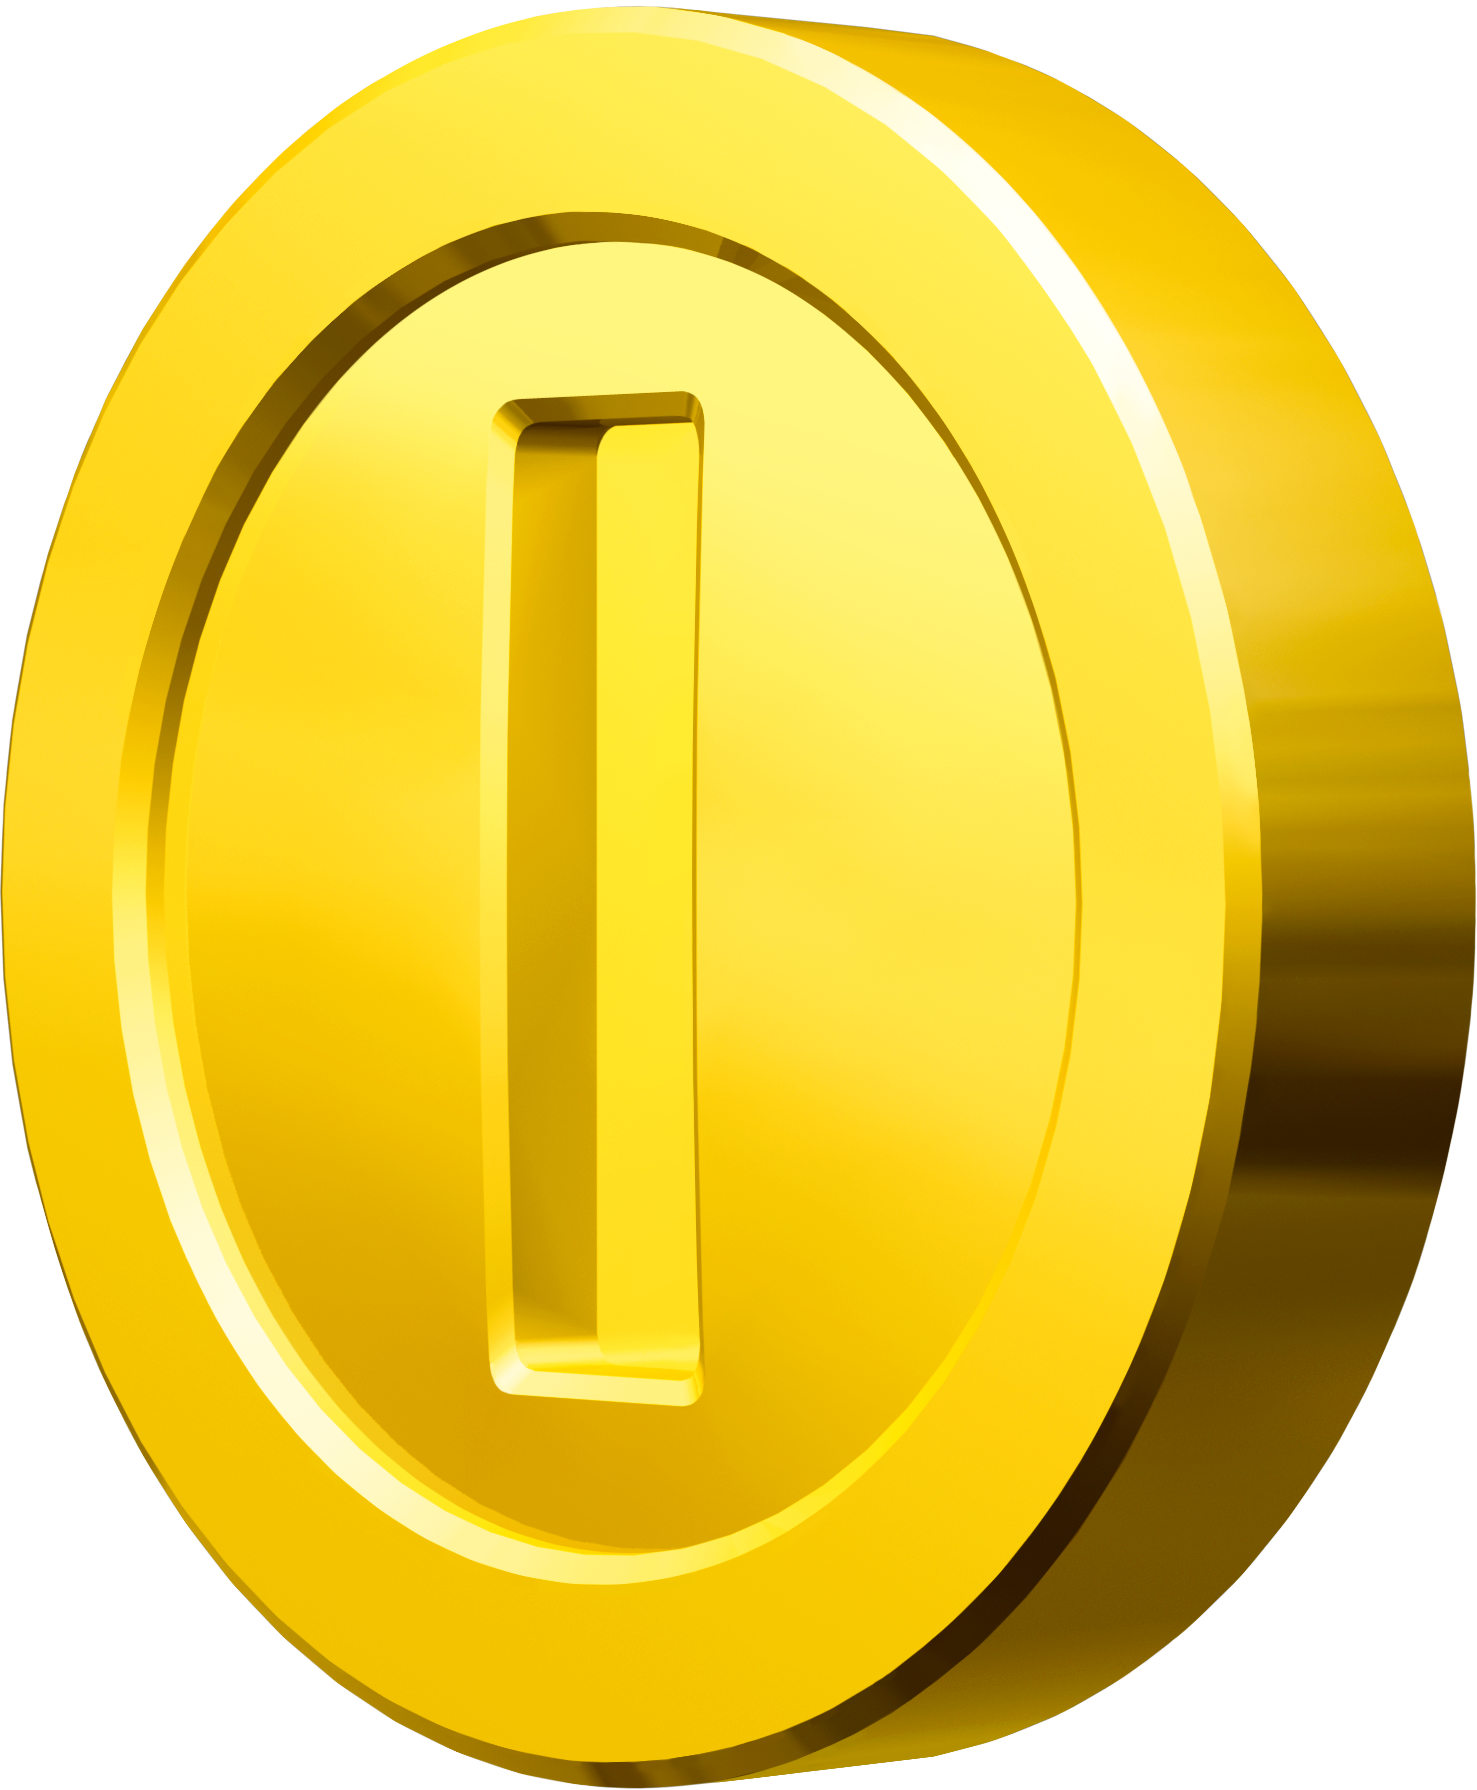 Super mario coin png